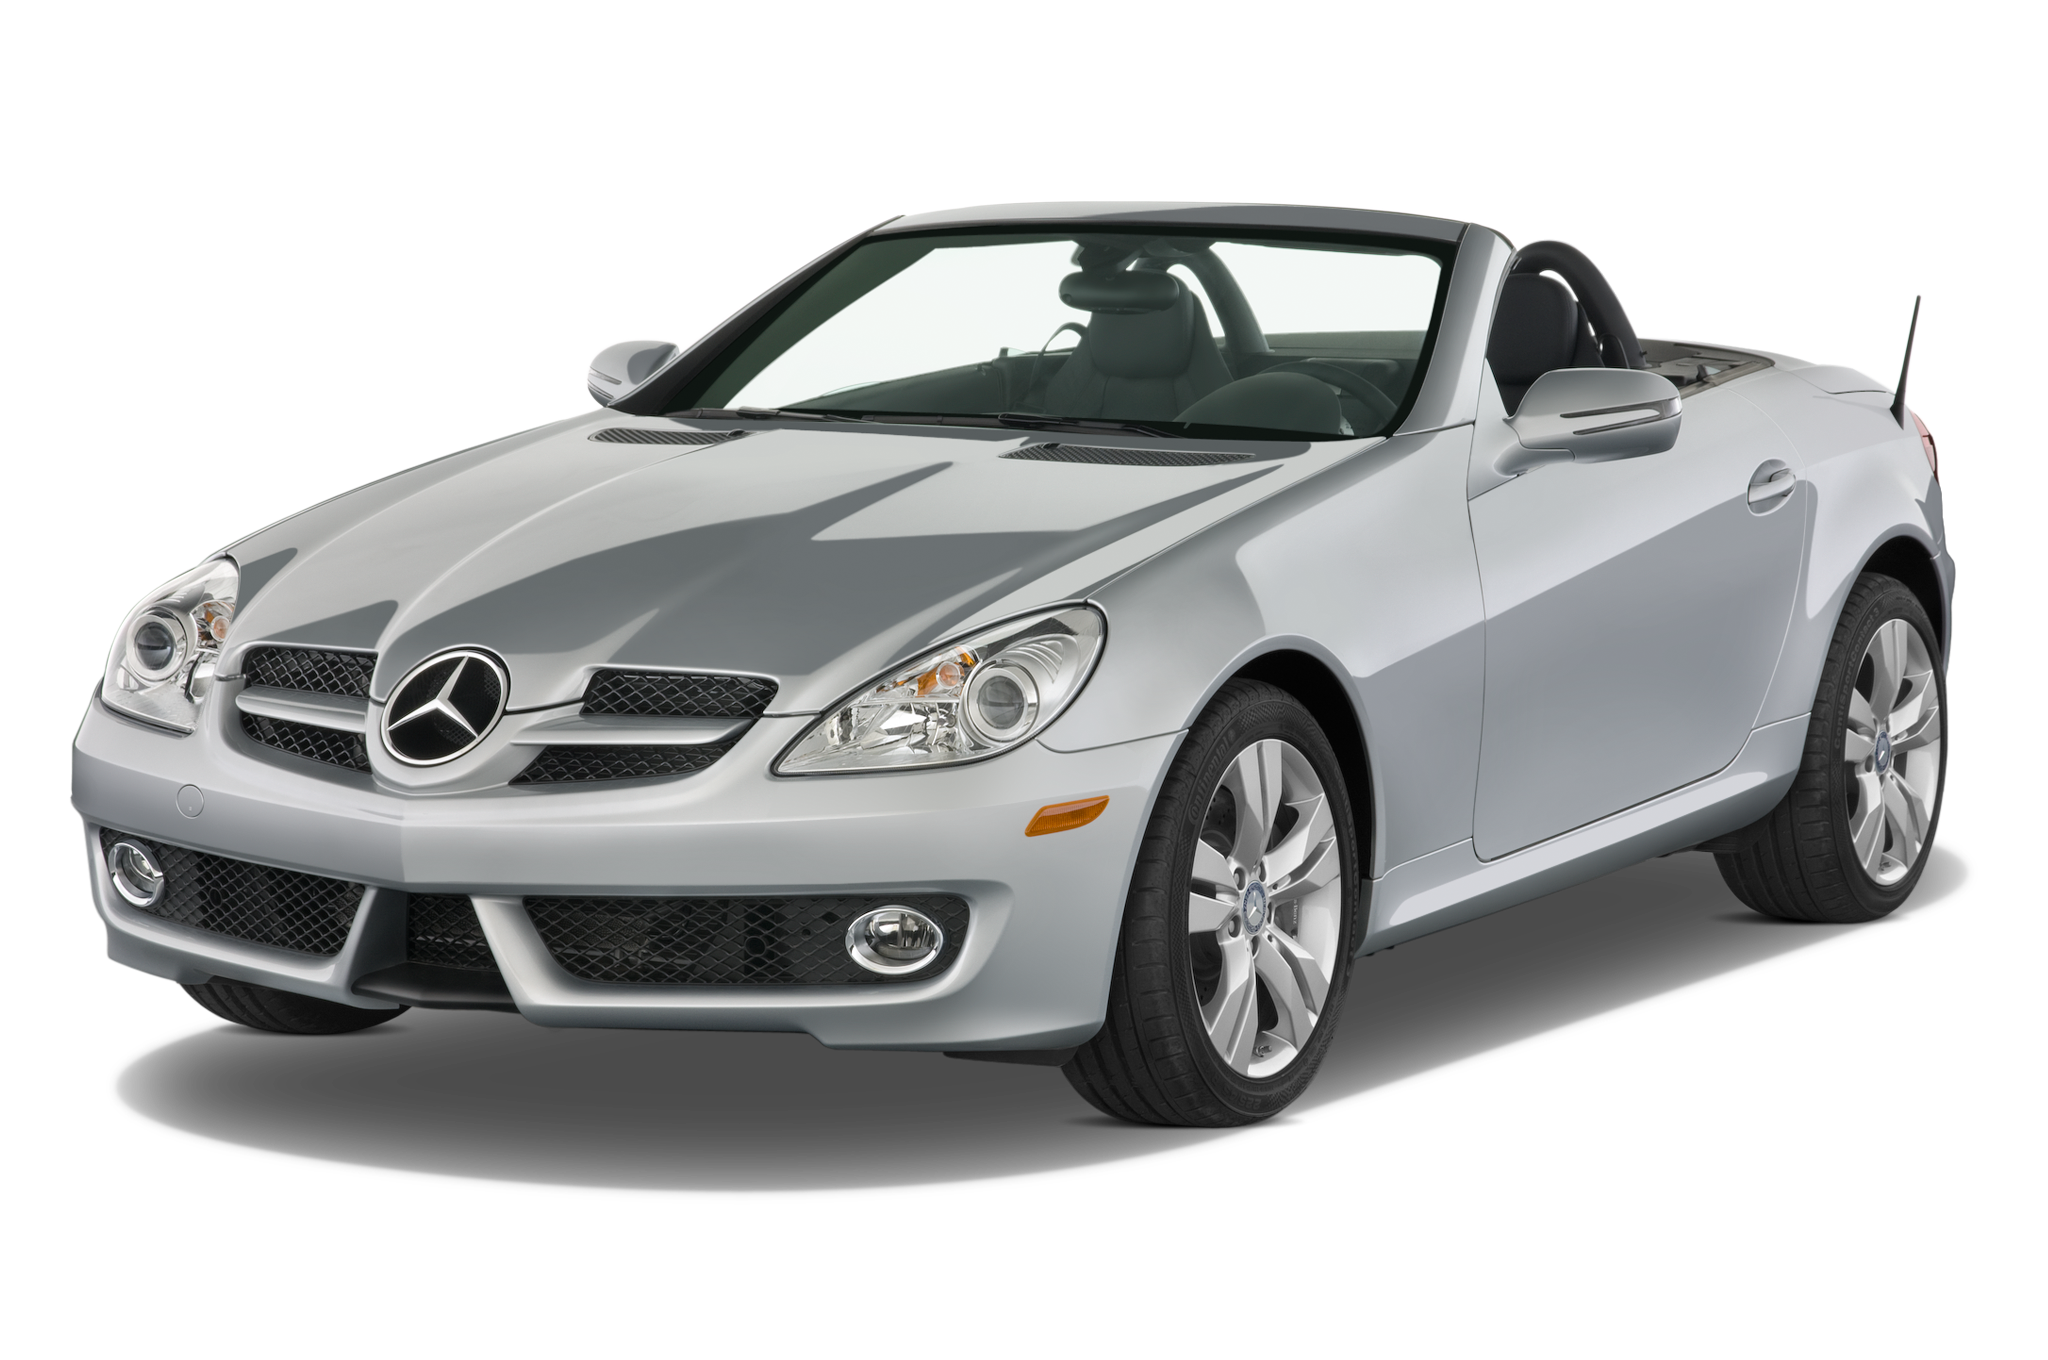 bmw z4 sdrive35is vs mercedes benz slk350 comparison automobile magazine. Black Bedroom Furniture Sets. Home Design Ideas